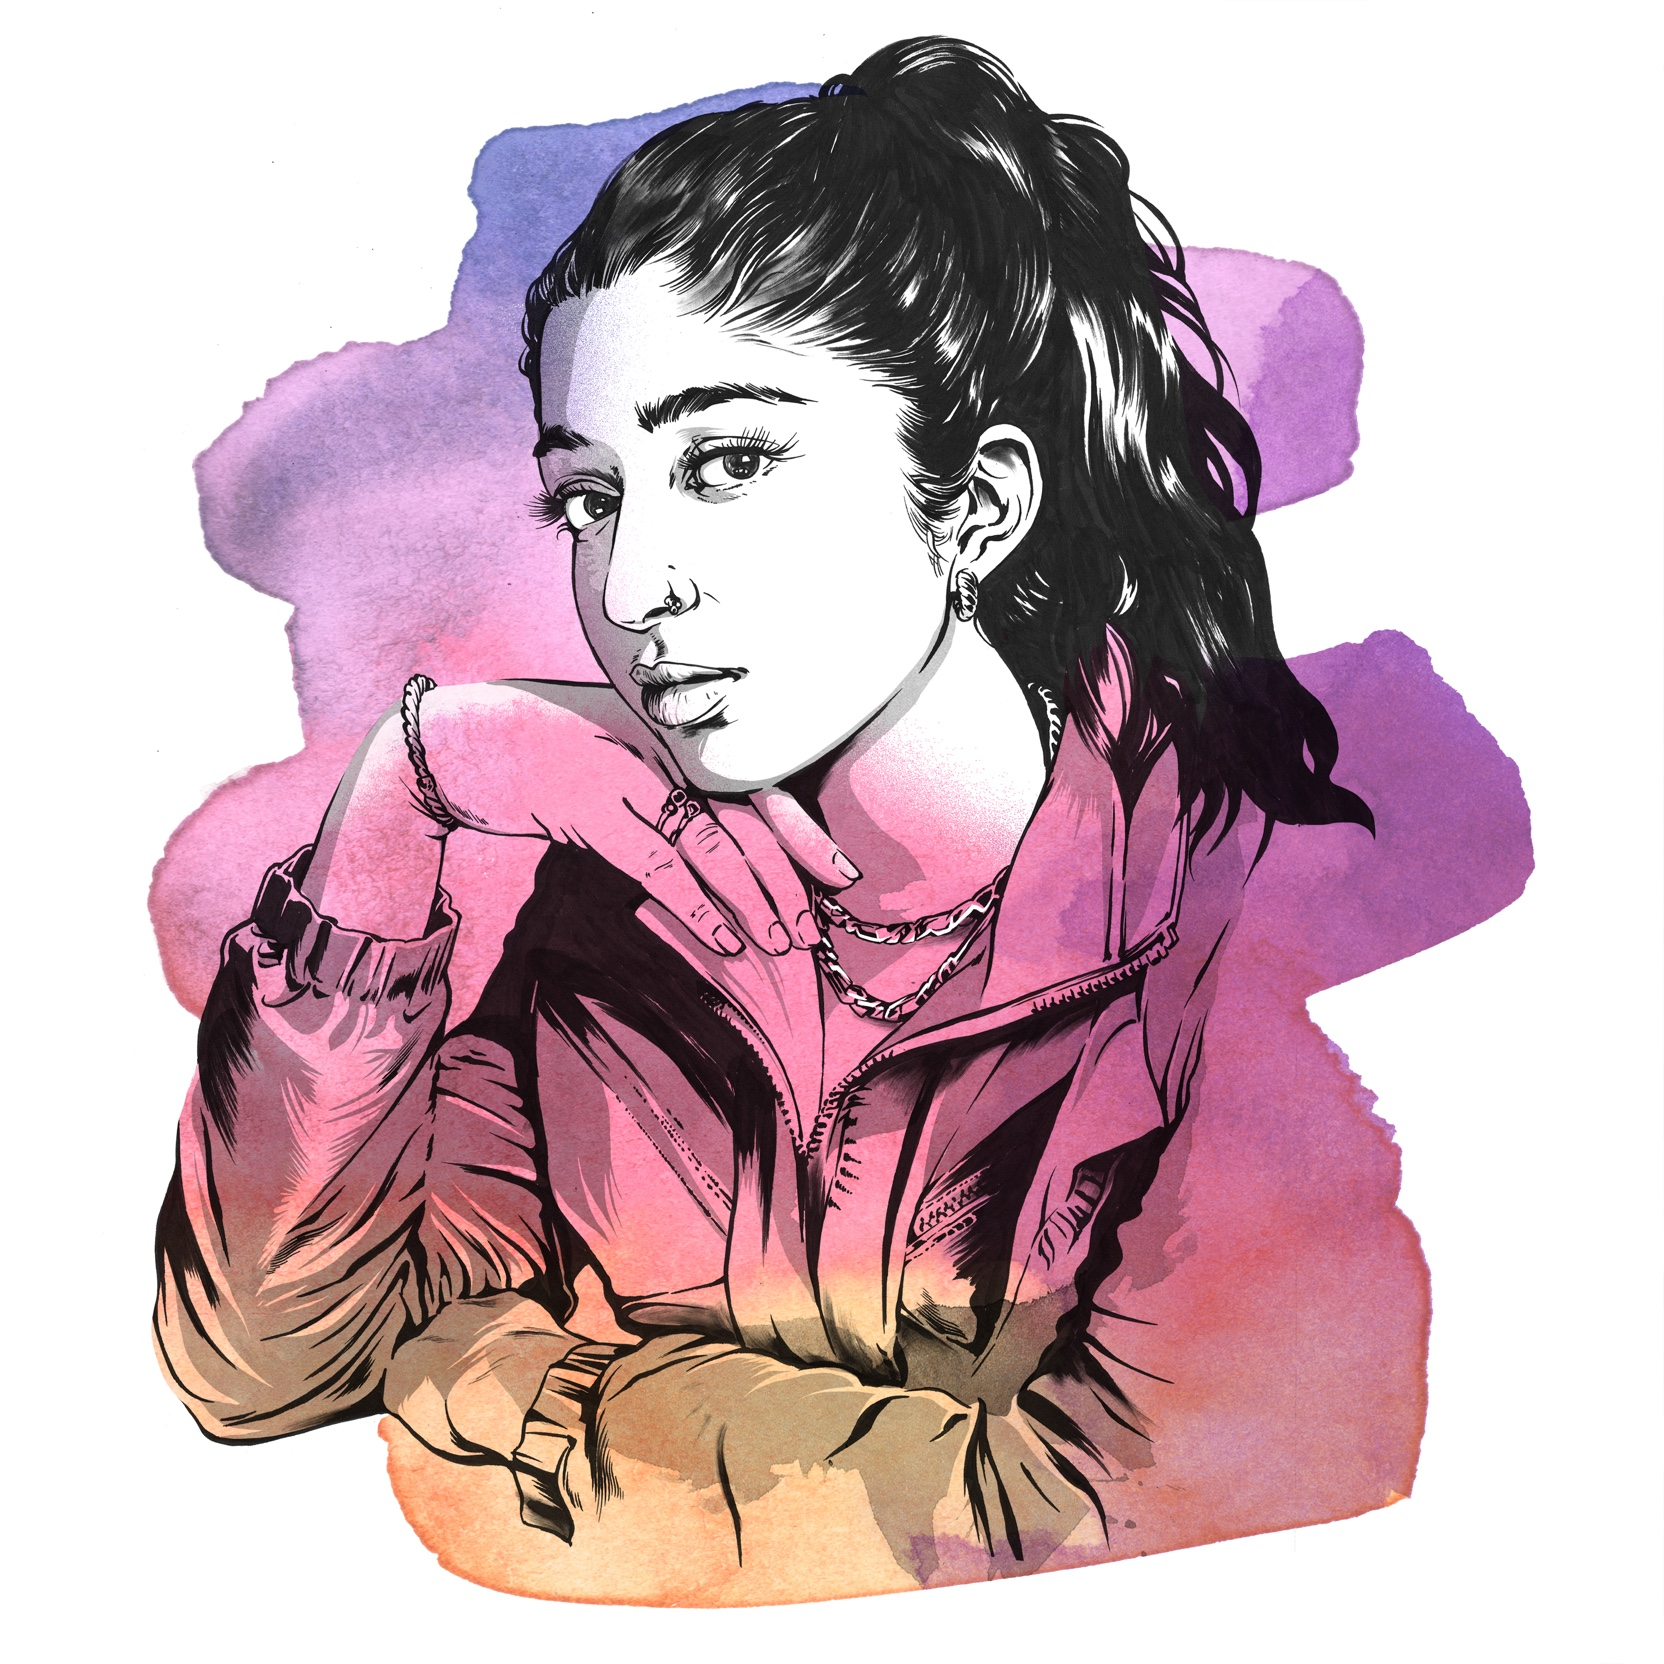 Pencil and watercolor sketch of Maitreyi Ramakrishnan looking effortlessly glamorous in a windbreaker and gold jewelry.